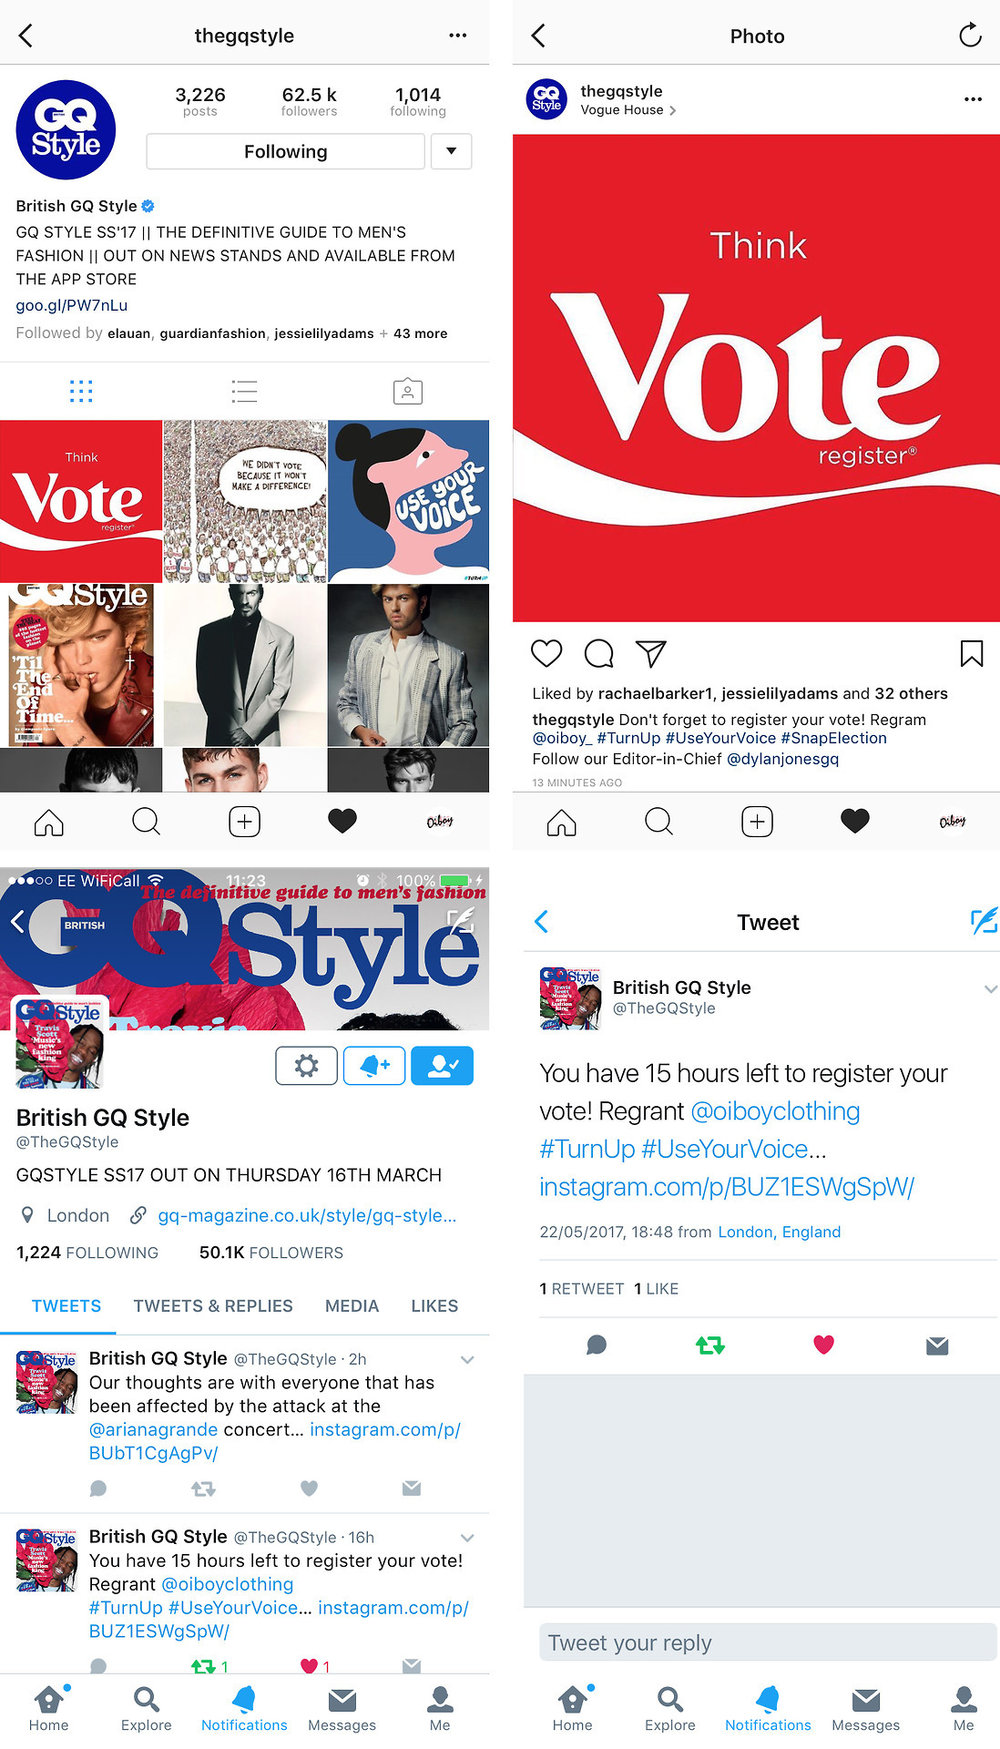 WE MADE UK GENERAL ELECTION VOTE SOCIAL MEDIA POSTS, WHICH WERE RETWEETED AND RE-GRAMMED BY BRITISH GQ STYLE MAGAZINE'S SOCIAL ACCOUNTS.